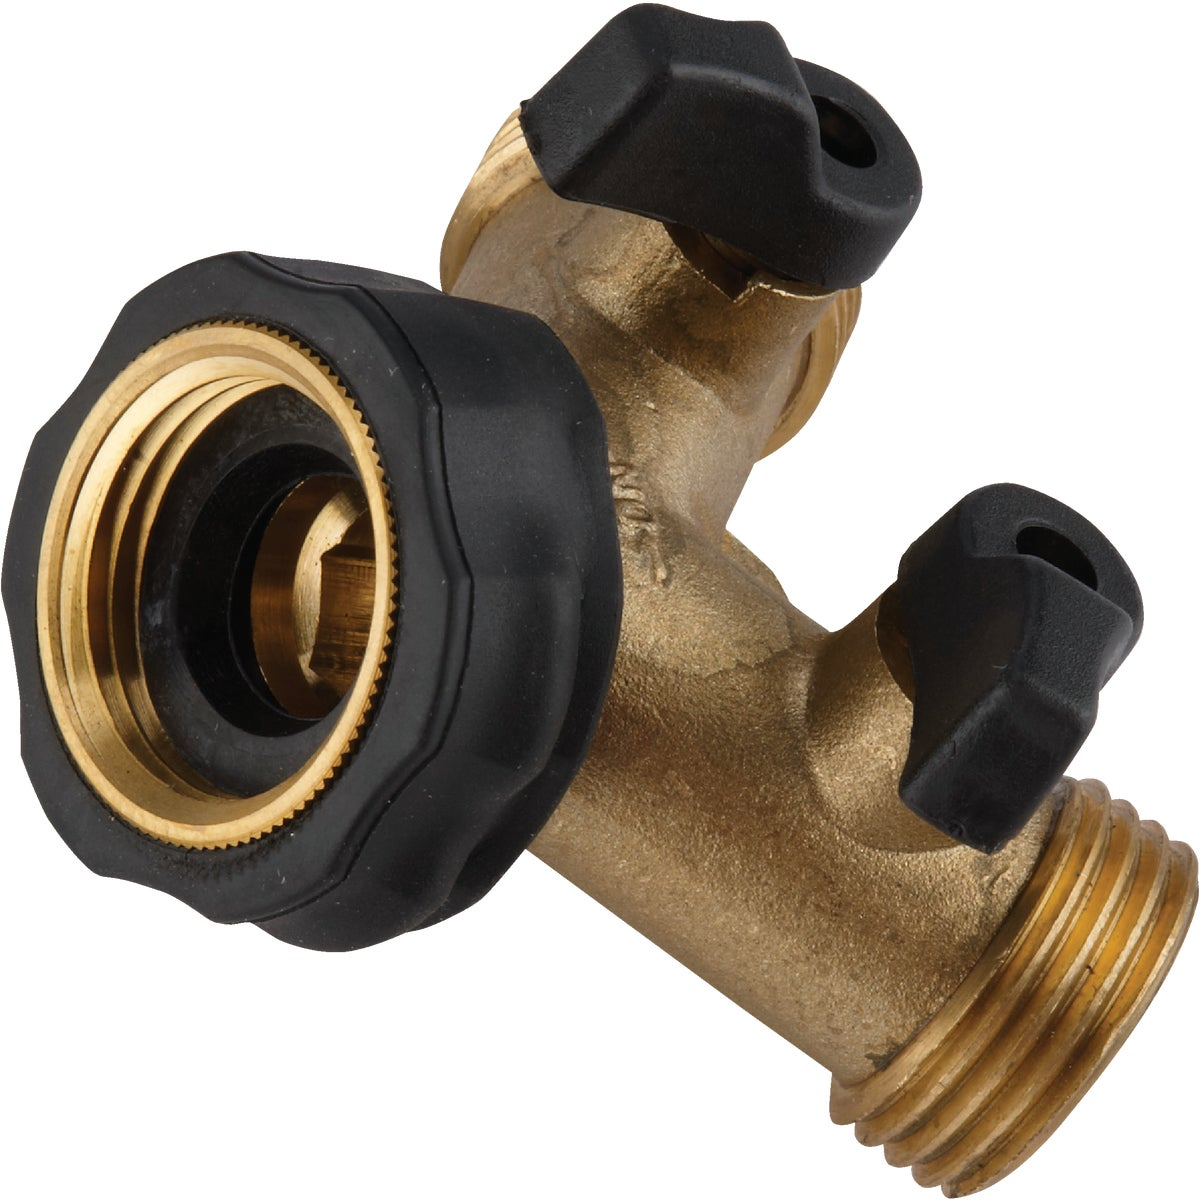 Brass RV Shut Off Valve